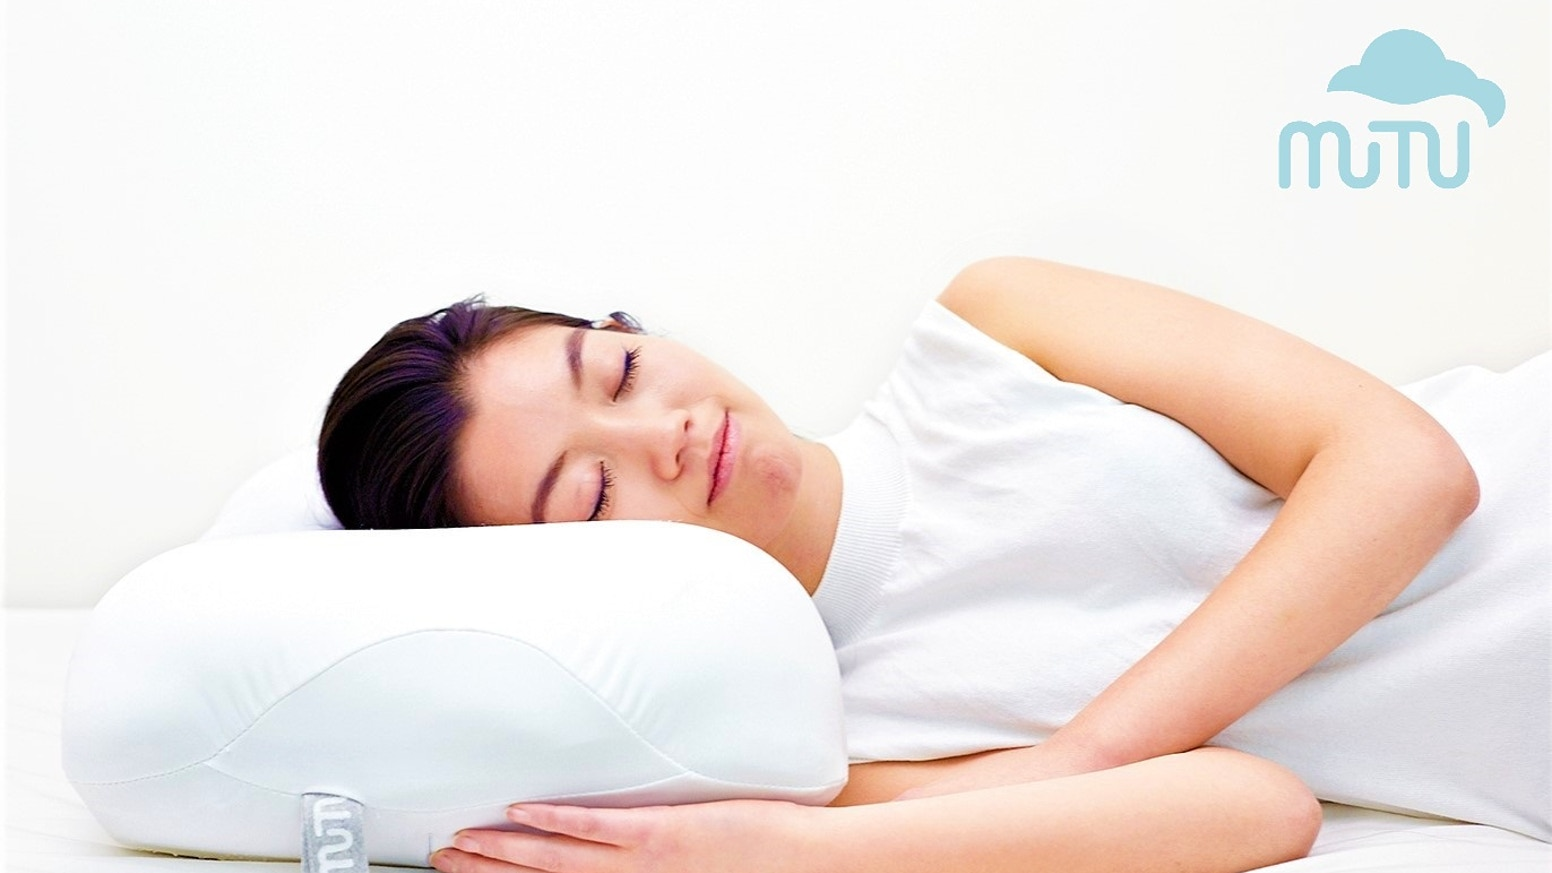 Better sleep can change your life. Choose a pillow that's right for you and recharge like never before.